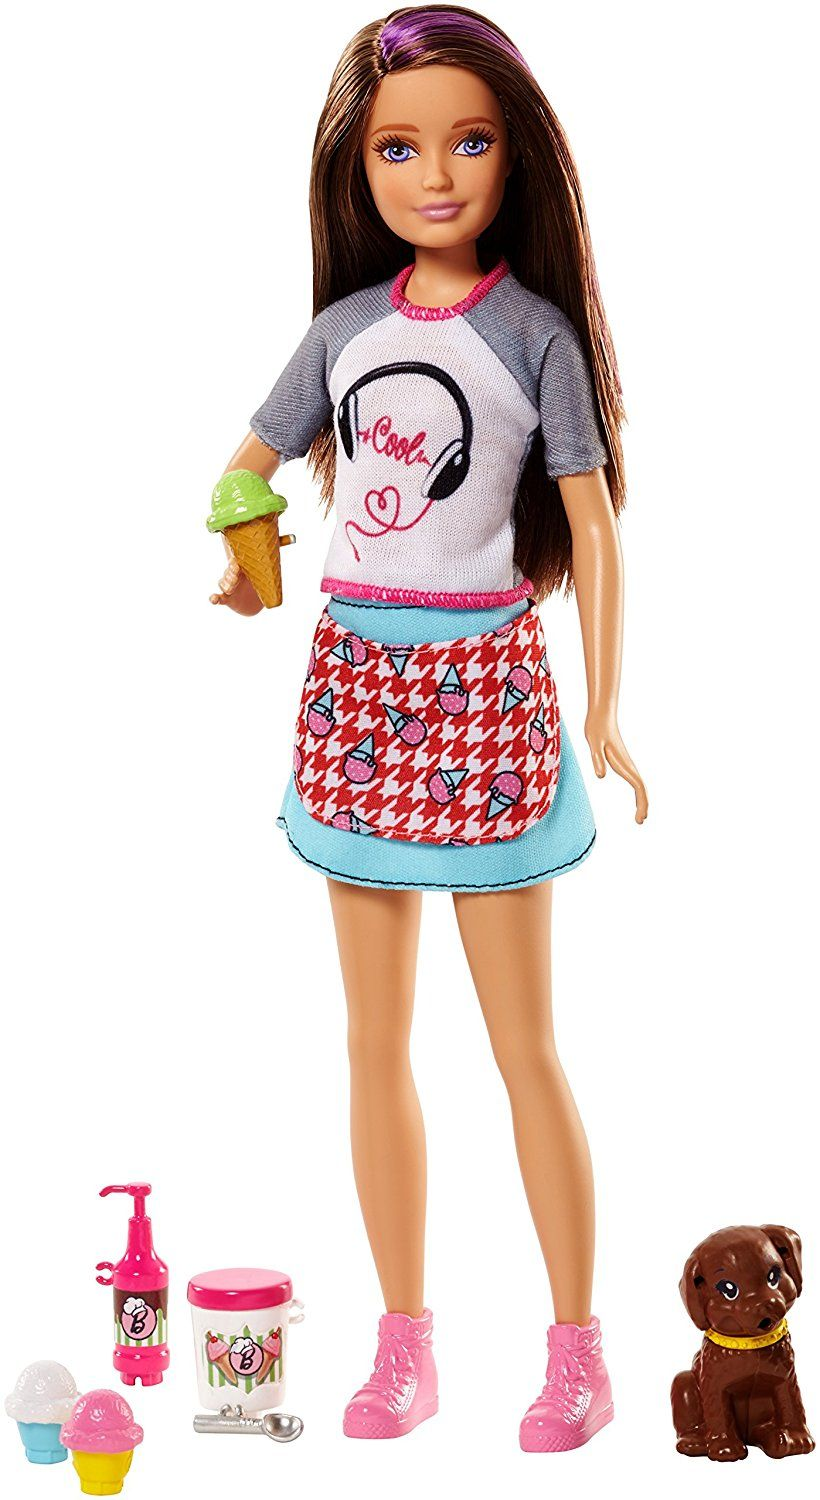 2018 News about the Barbie Dolls!